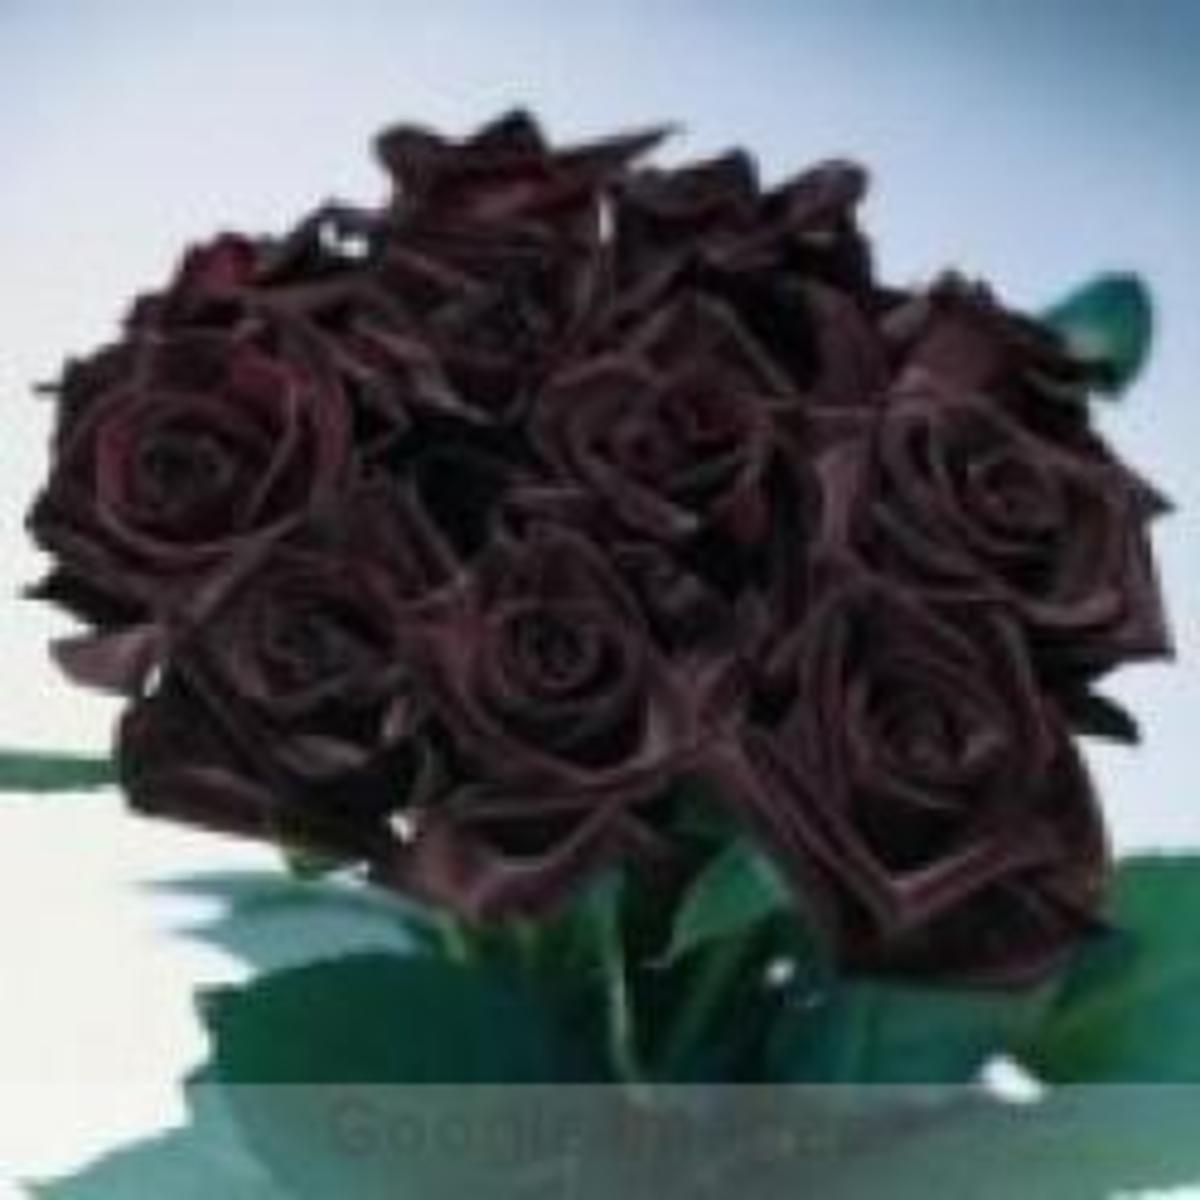 sending-roses-to-your-love